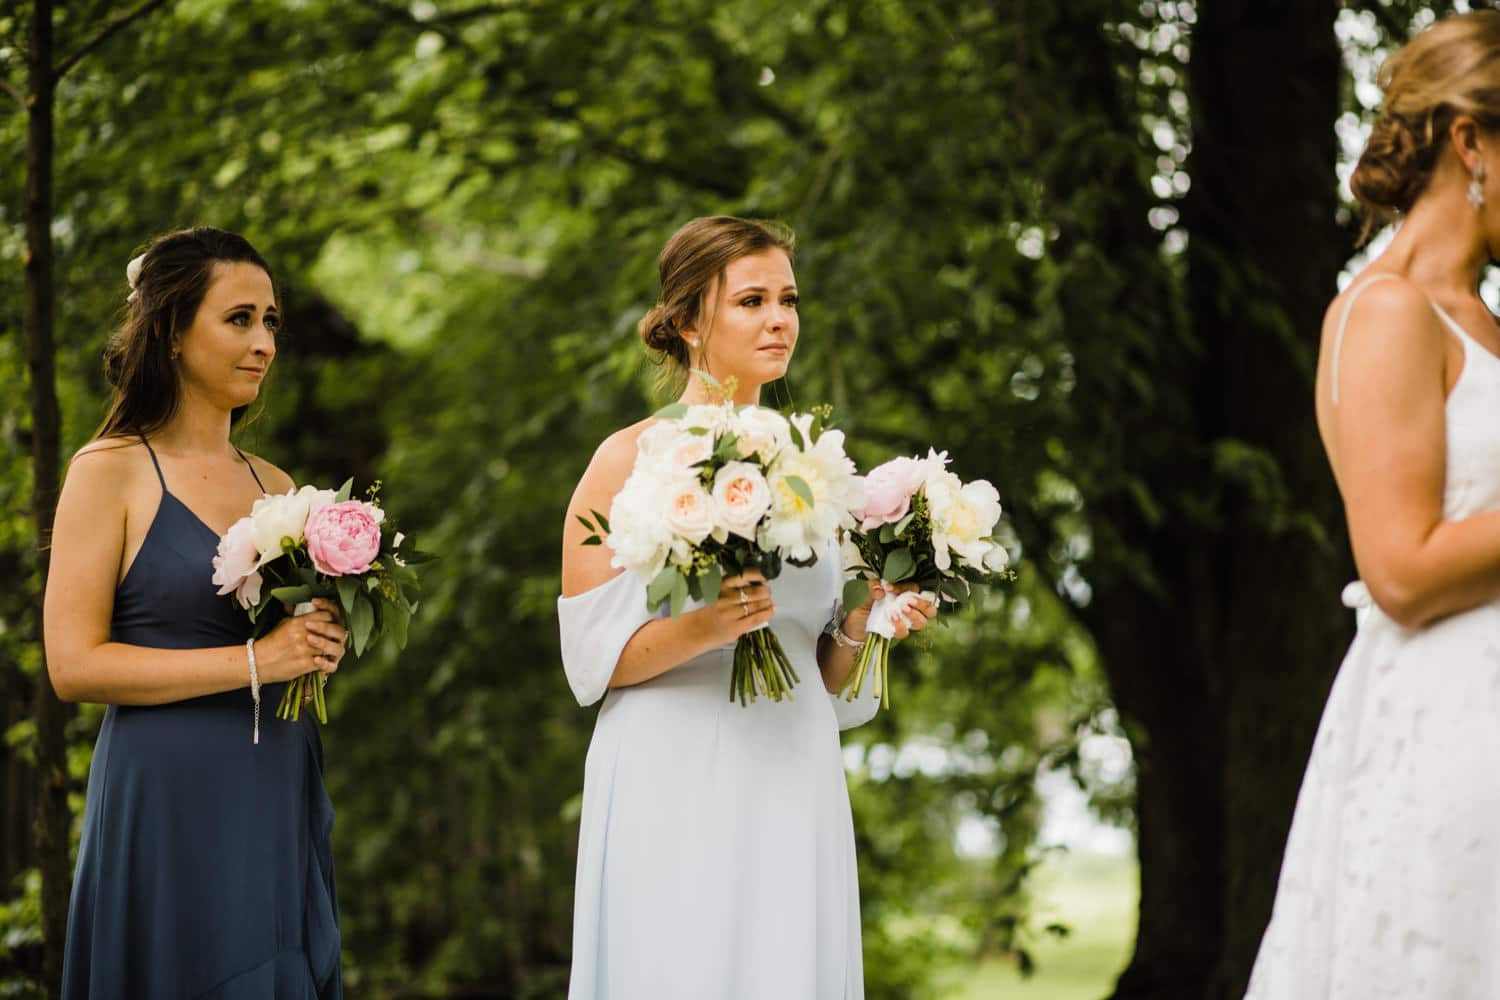 bridesmaid cries during vows - ottawa backyard wedding - carley teresa photography